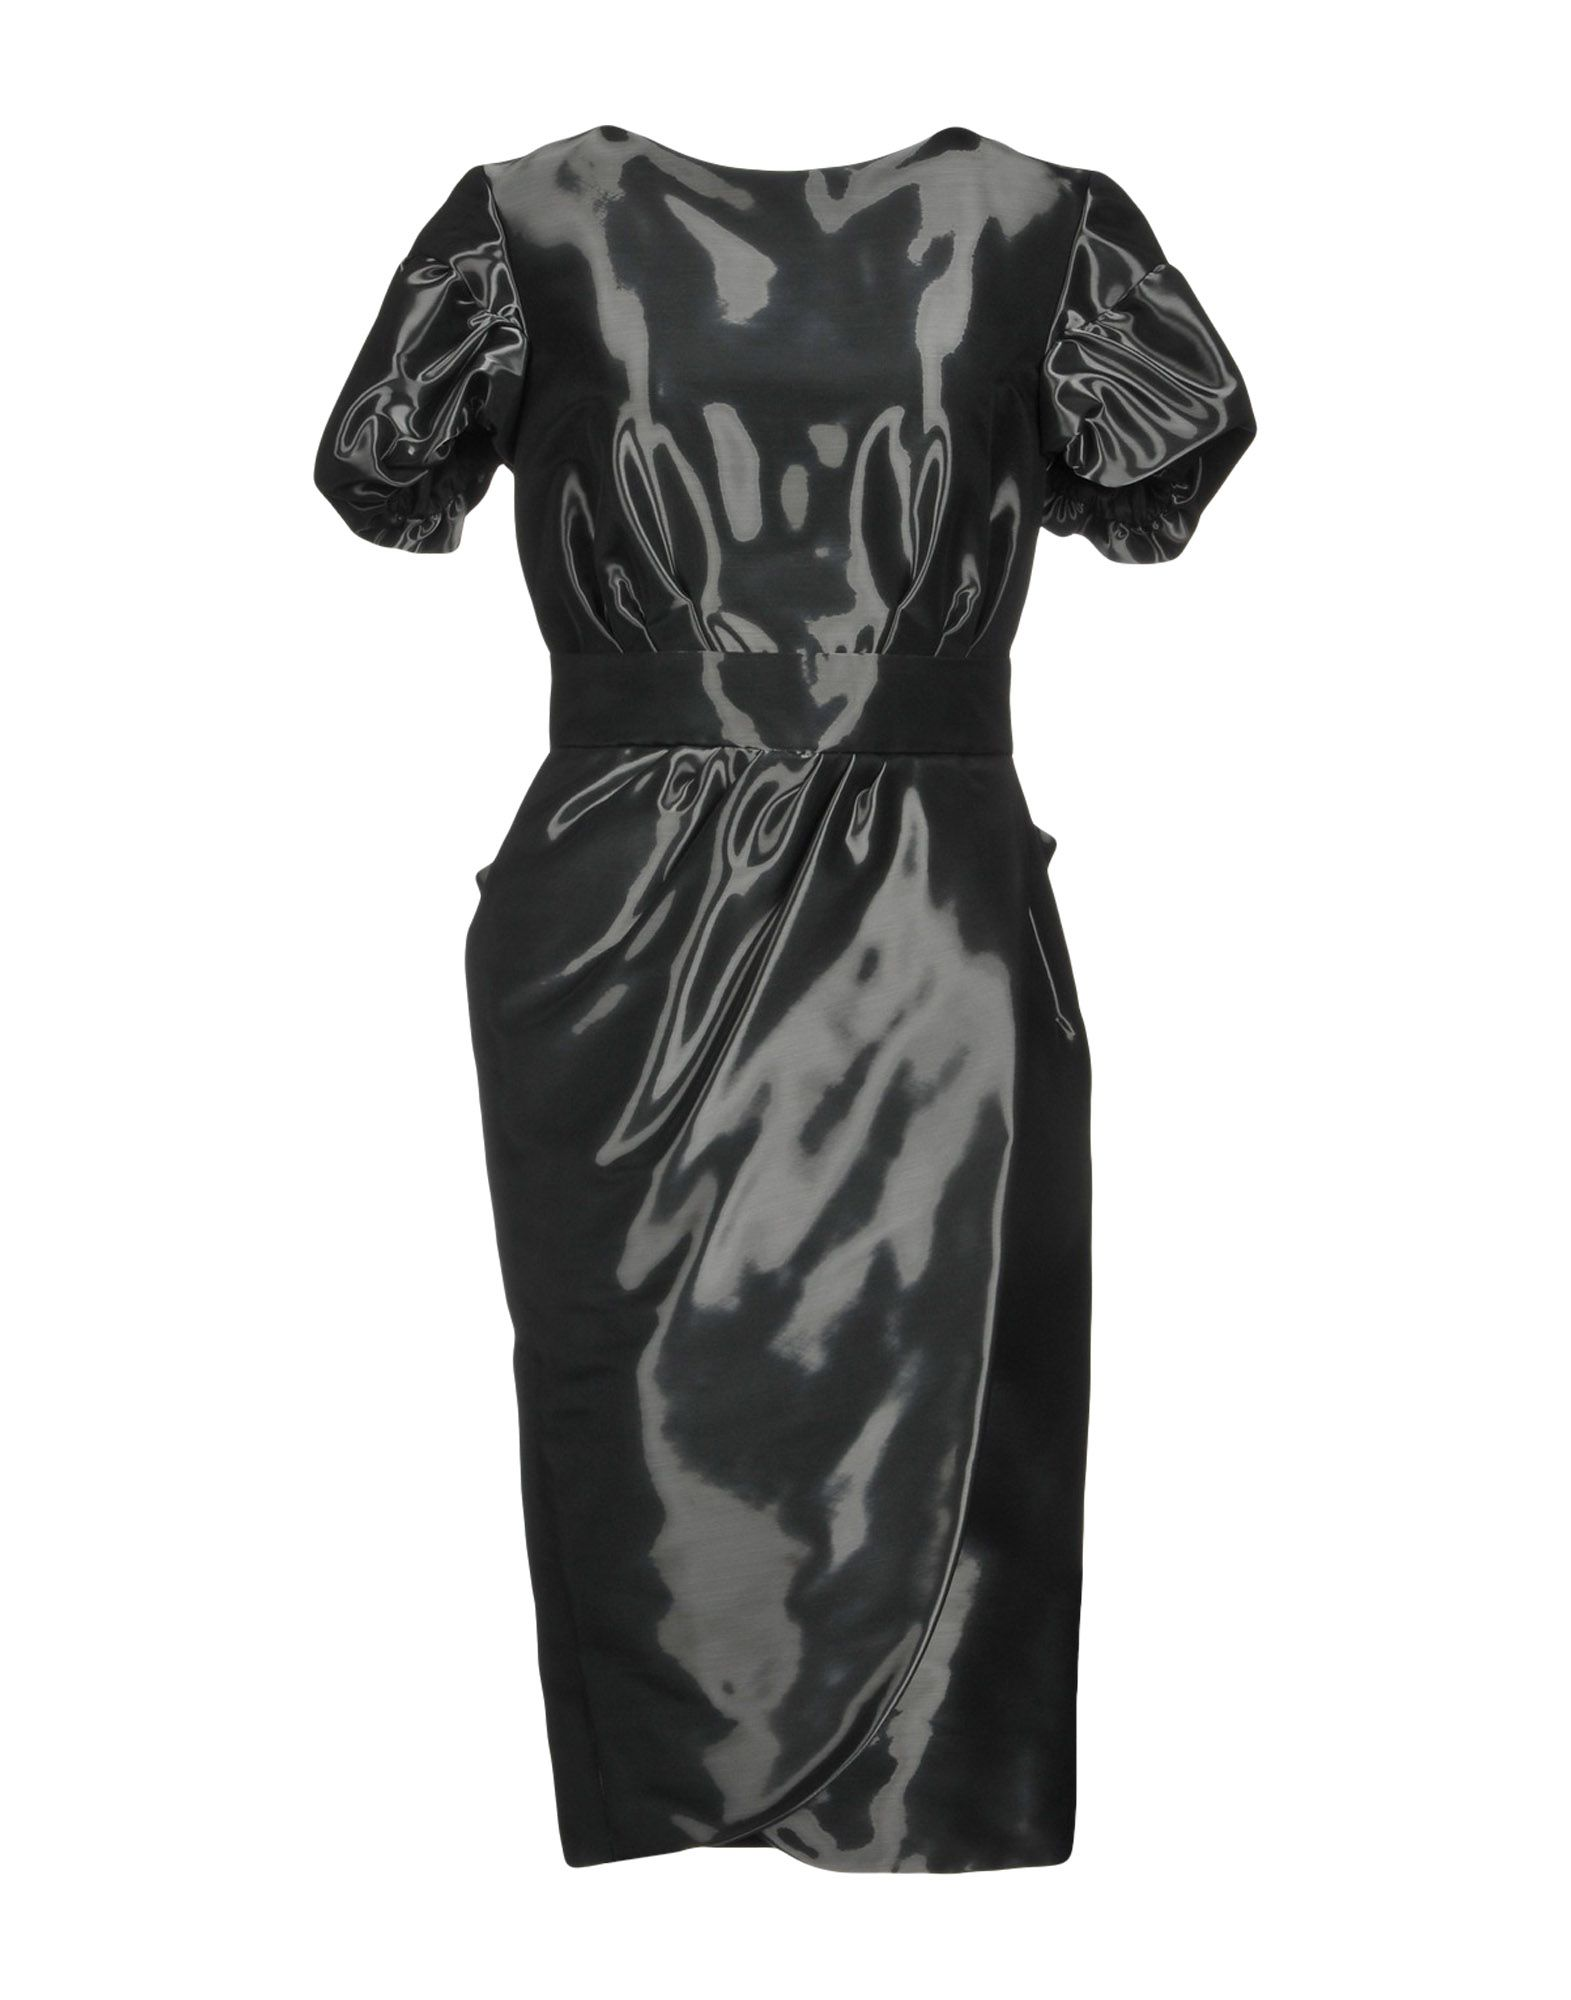 IO COUTURE Knee-Length Dress in Black